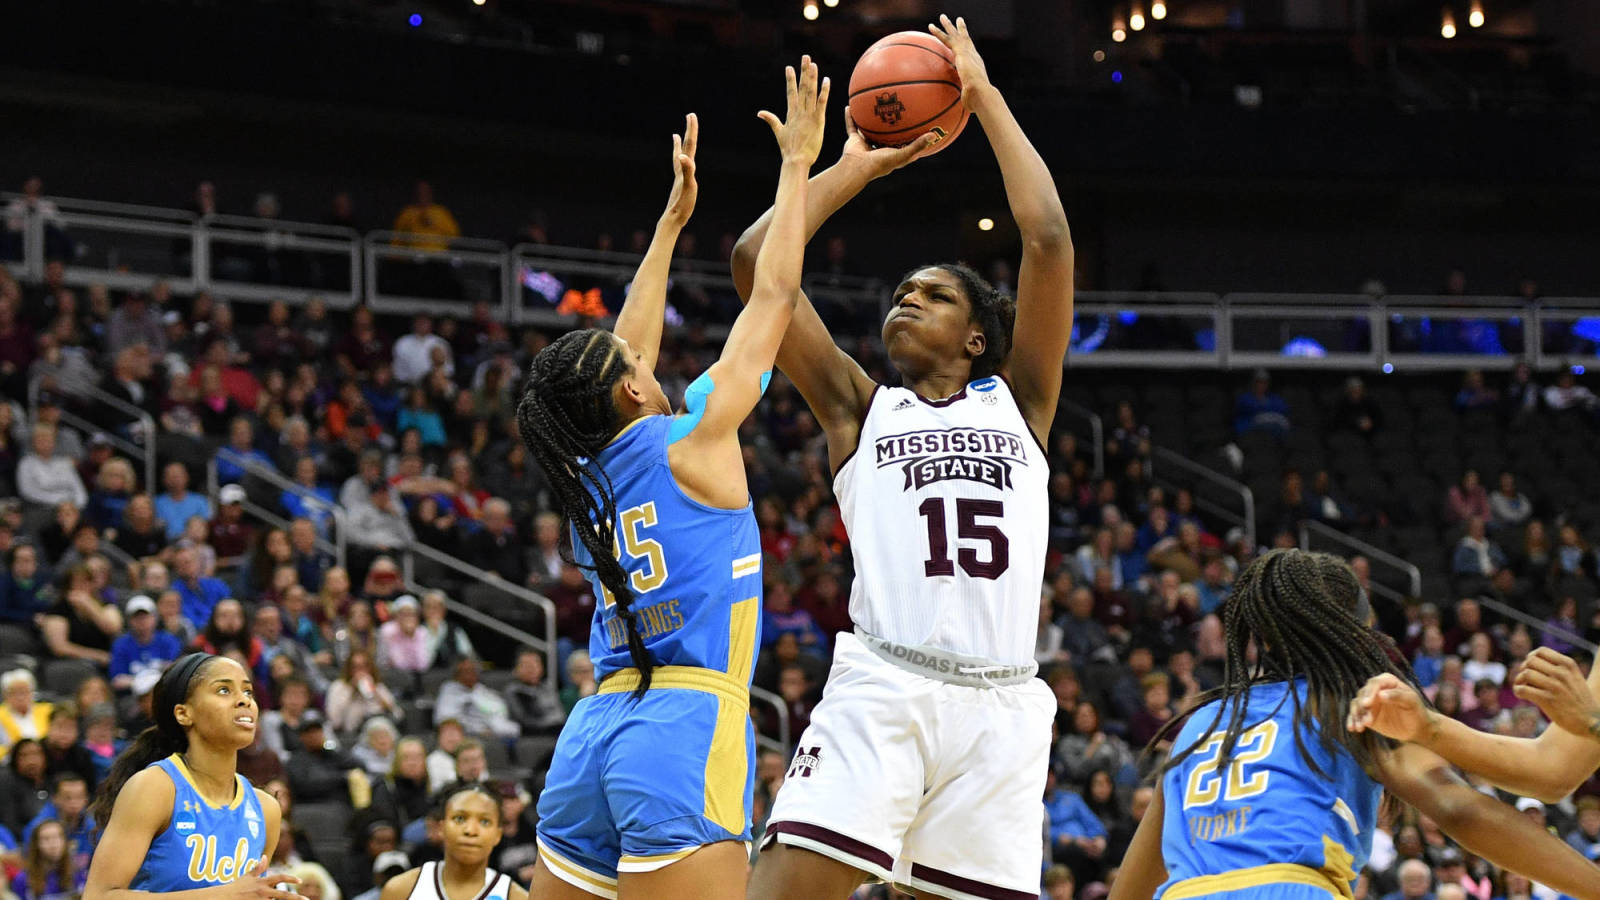 Mississippi State returns to women's NCAA title game